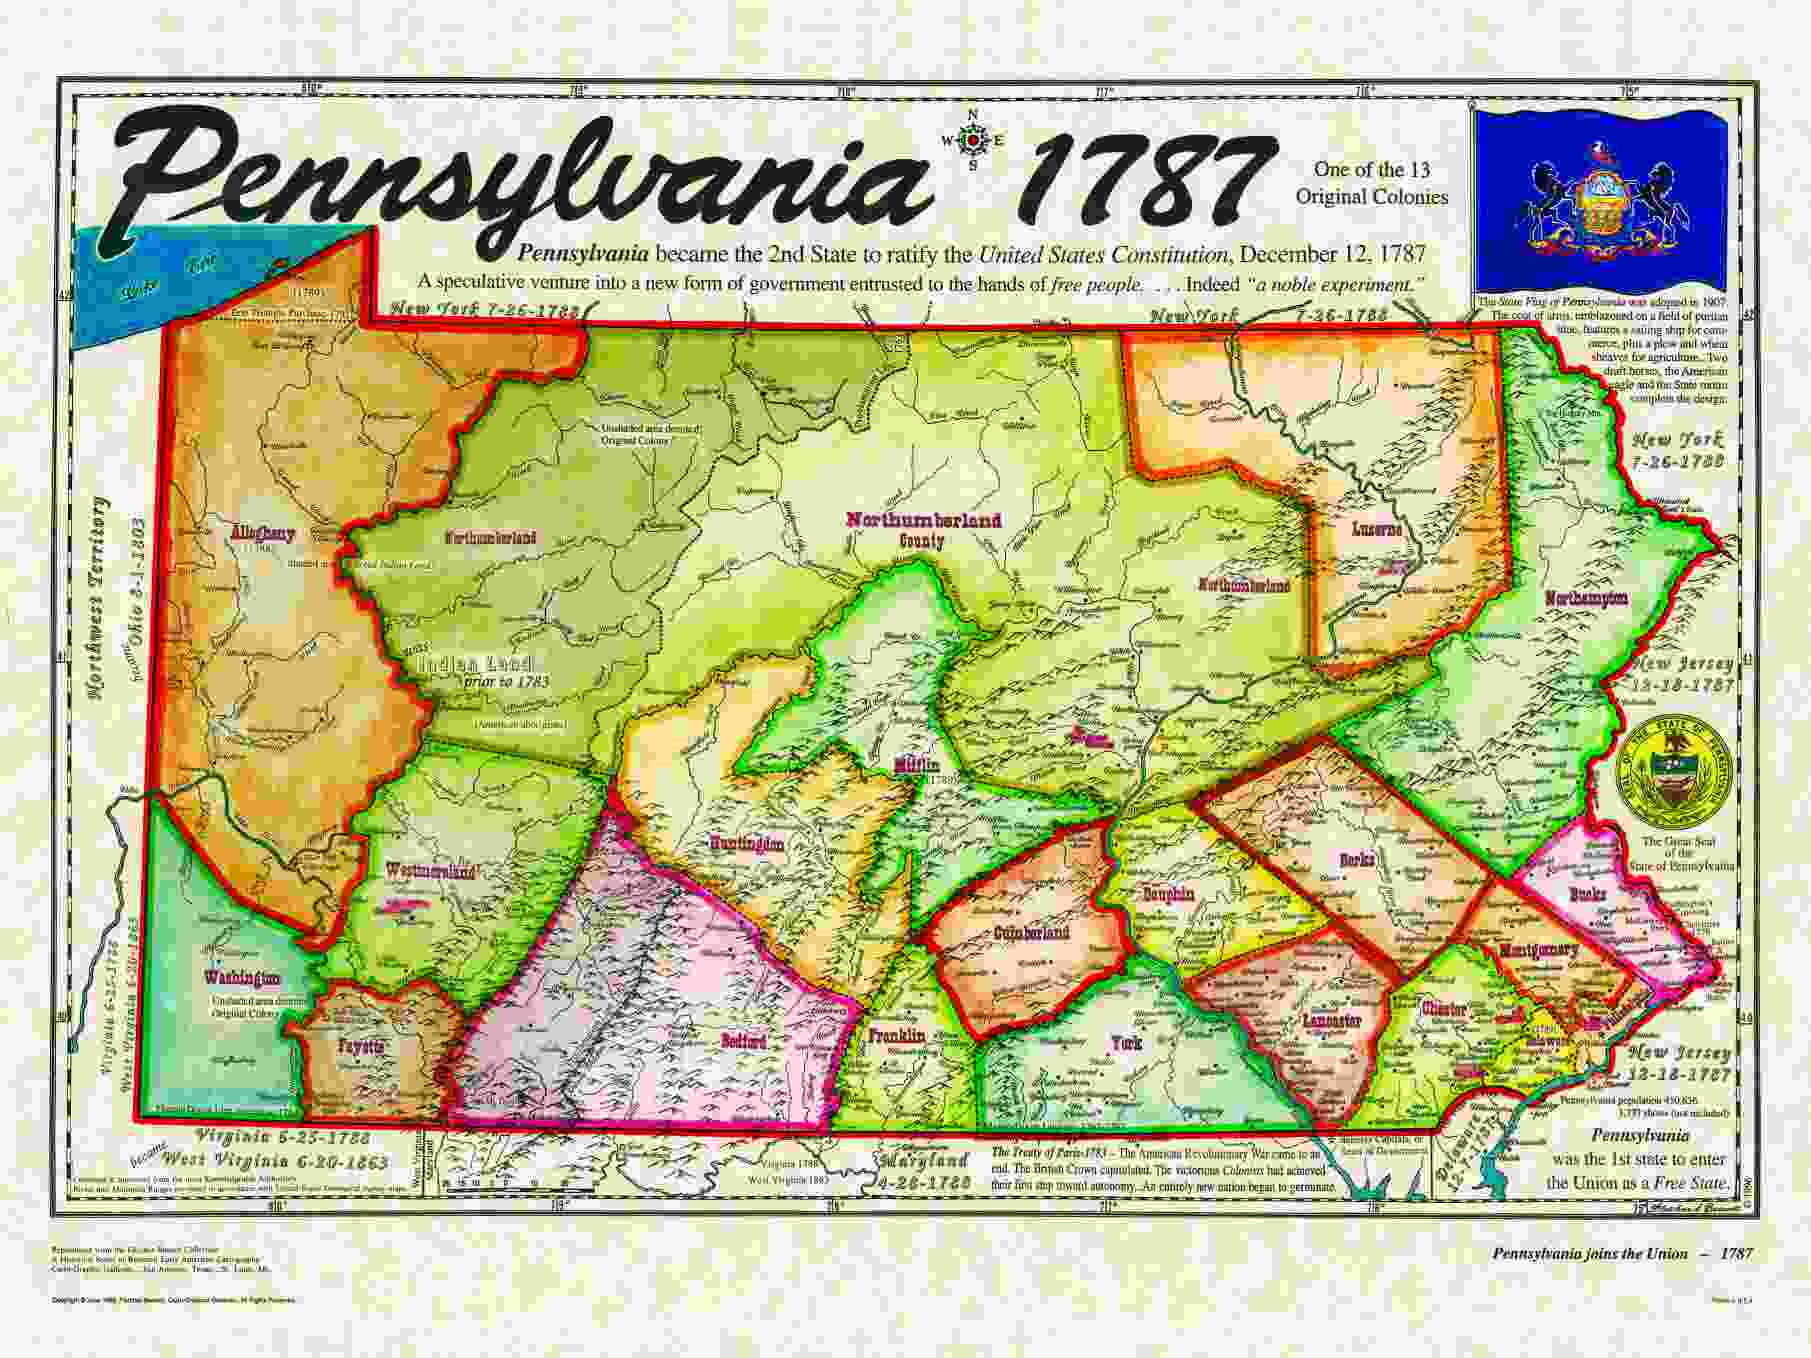 Original 13 States on north carolina 13 colonies map, hudson river 13 colonies map, connecticut 13 colonies map, appalachian mountains 13 colonies map, french canada 13 colonies map, white mountains 13 colonies map, new england 13 colonies map, adirondack mountains 13 colonies map, territories 13 colonies map, delaware 13 colonies map, rhode island 13 colonies map,